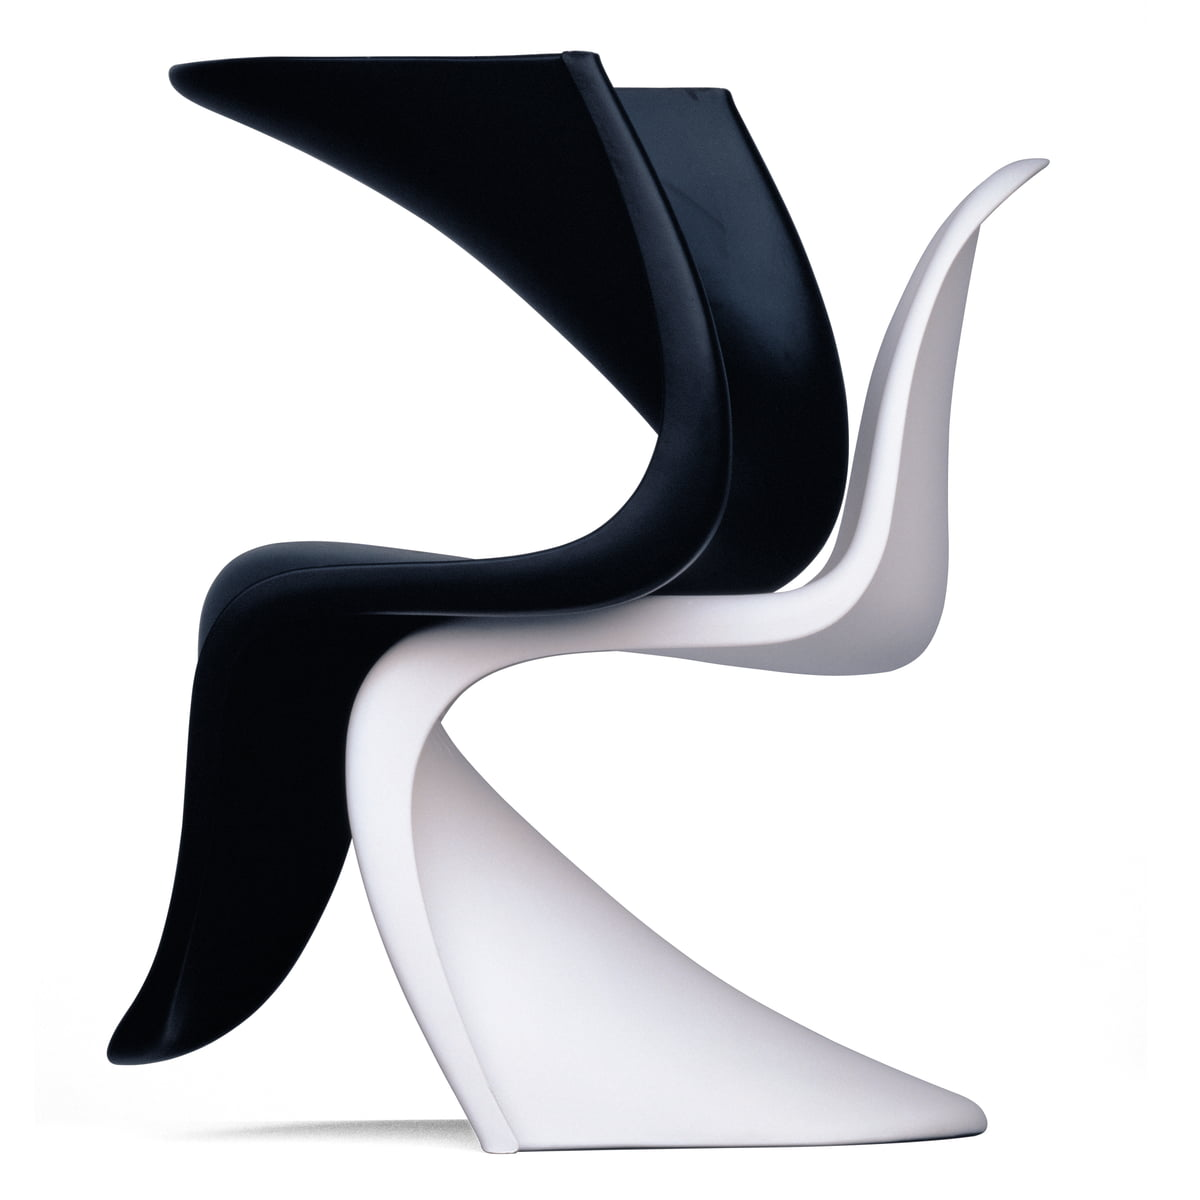 Panton chair original stuhl von vitra connox for Sillas de diseno famosas